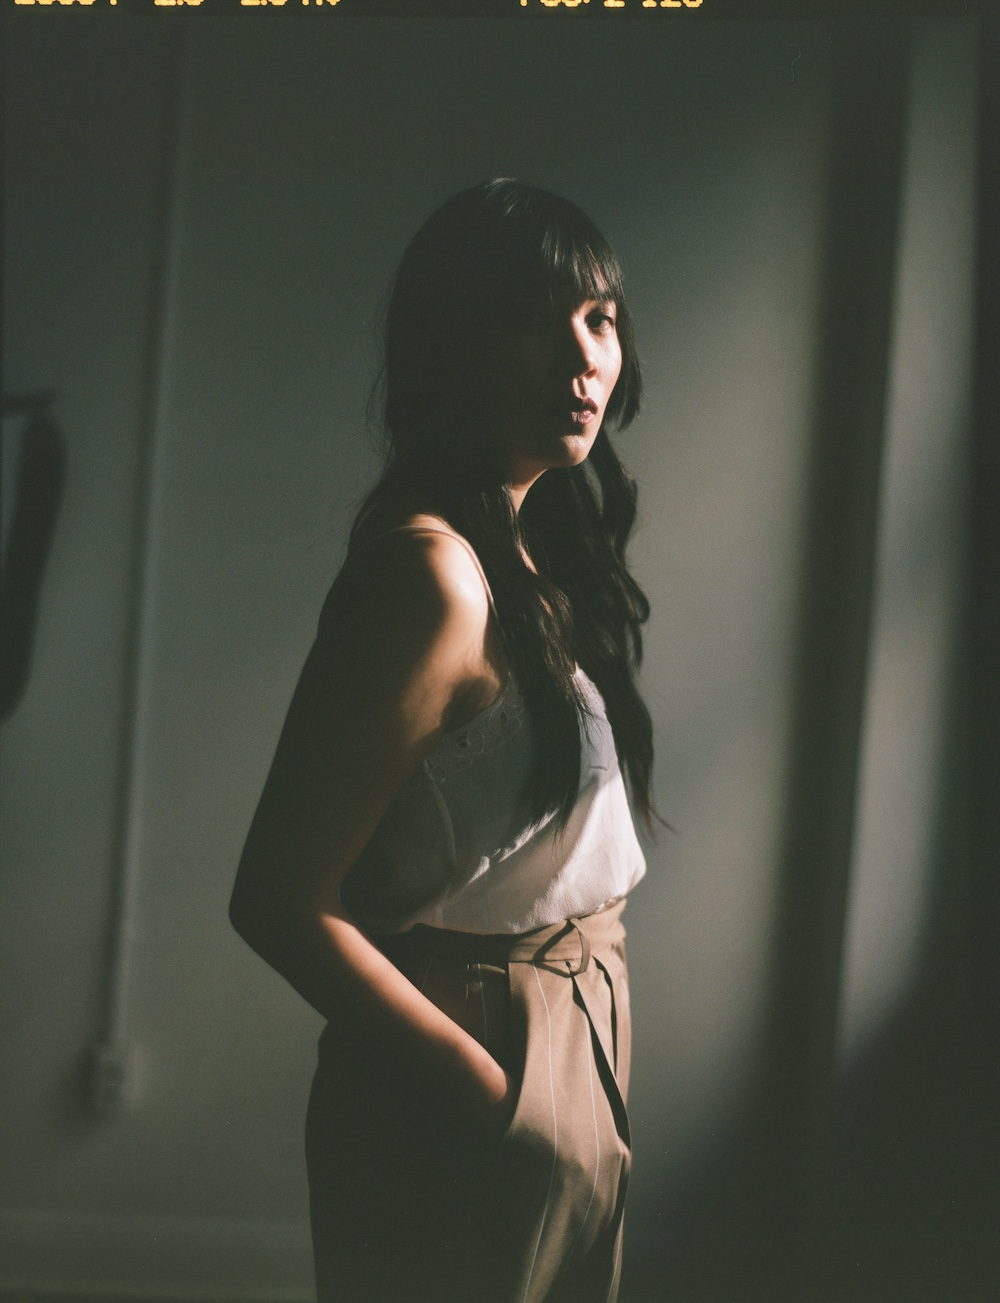 Thao Nguyen of Thao & The Get Down Stay Down Booking Agent